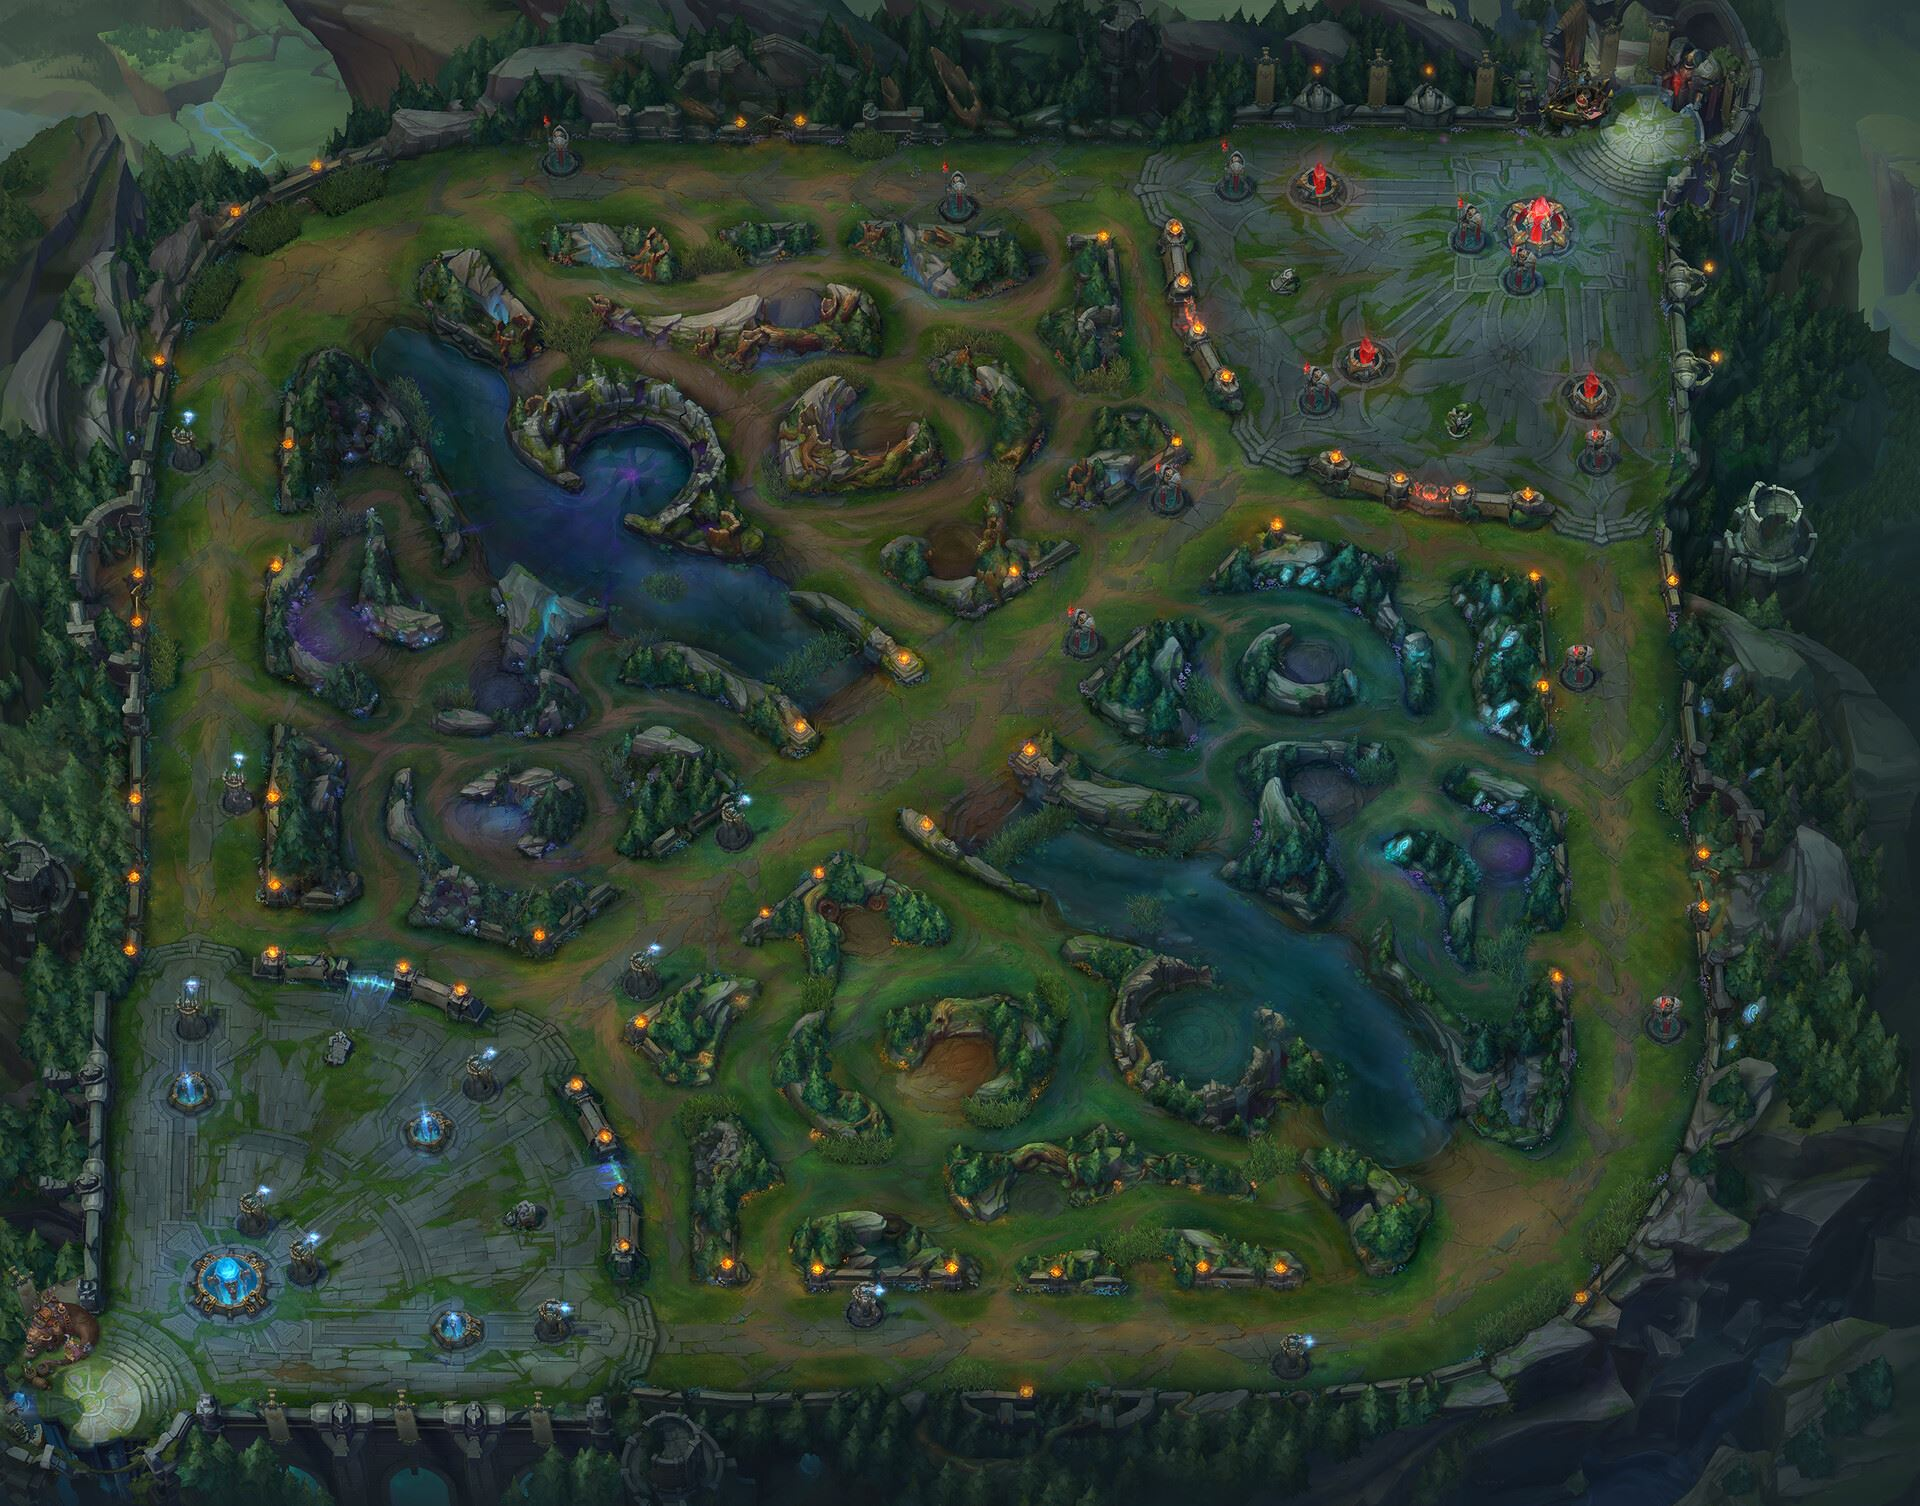 League of Legends Summoner's Rift Map